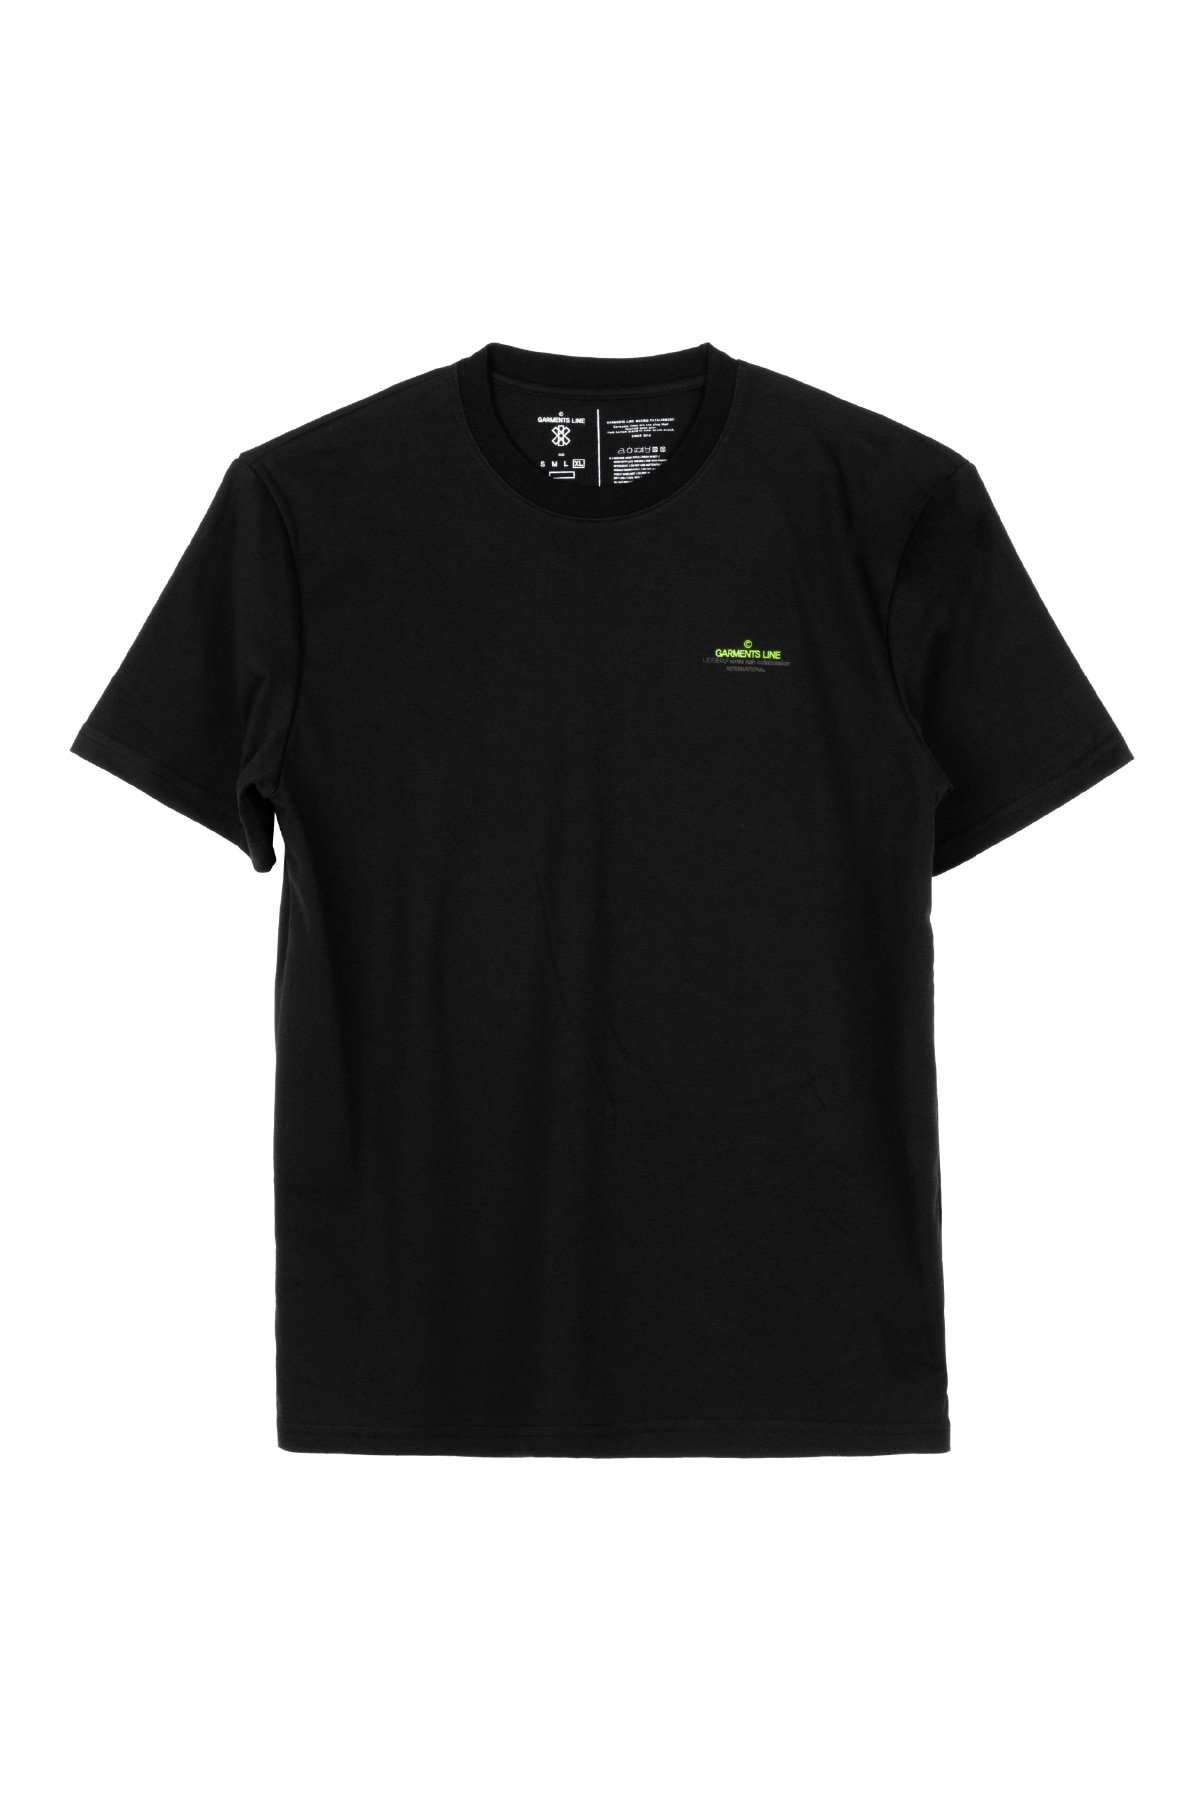 #G015 GML-Logo T-shirt (Black)